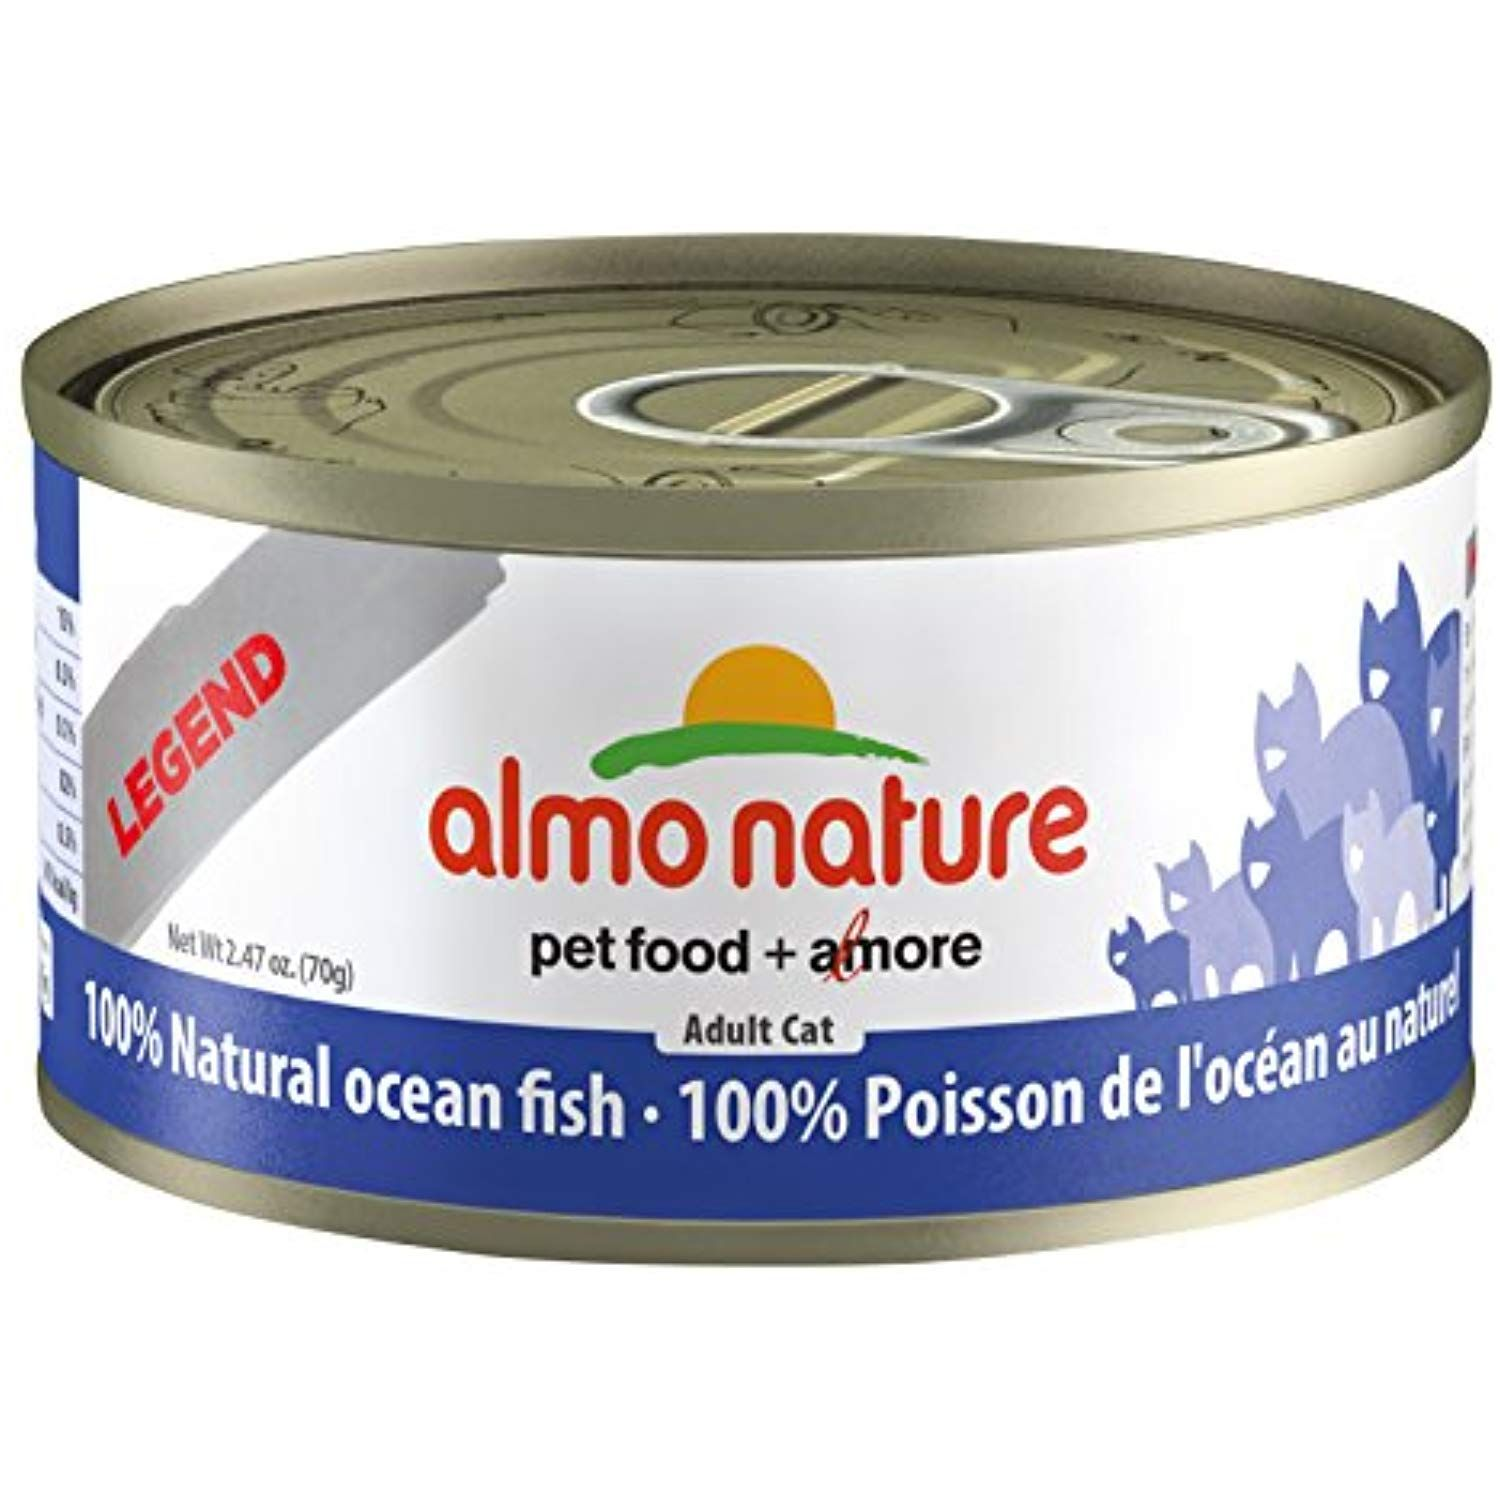 Almo Nature Hqs Legend Natural Cat Oceanic Fish 24 Pack Of 2 47 Oz 70g Cans You Can Find Out More Details At The Canned Cat Food Cat Food Canned Dog Food